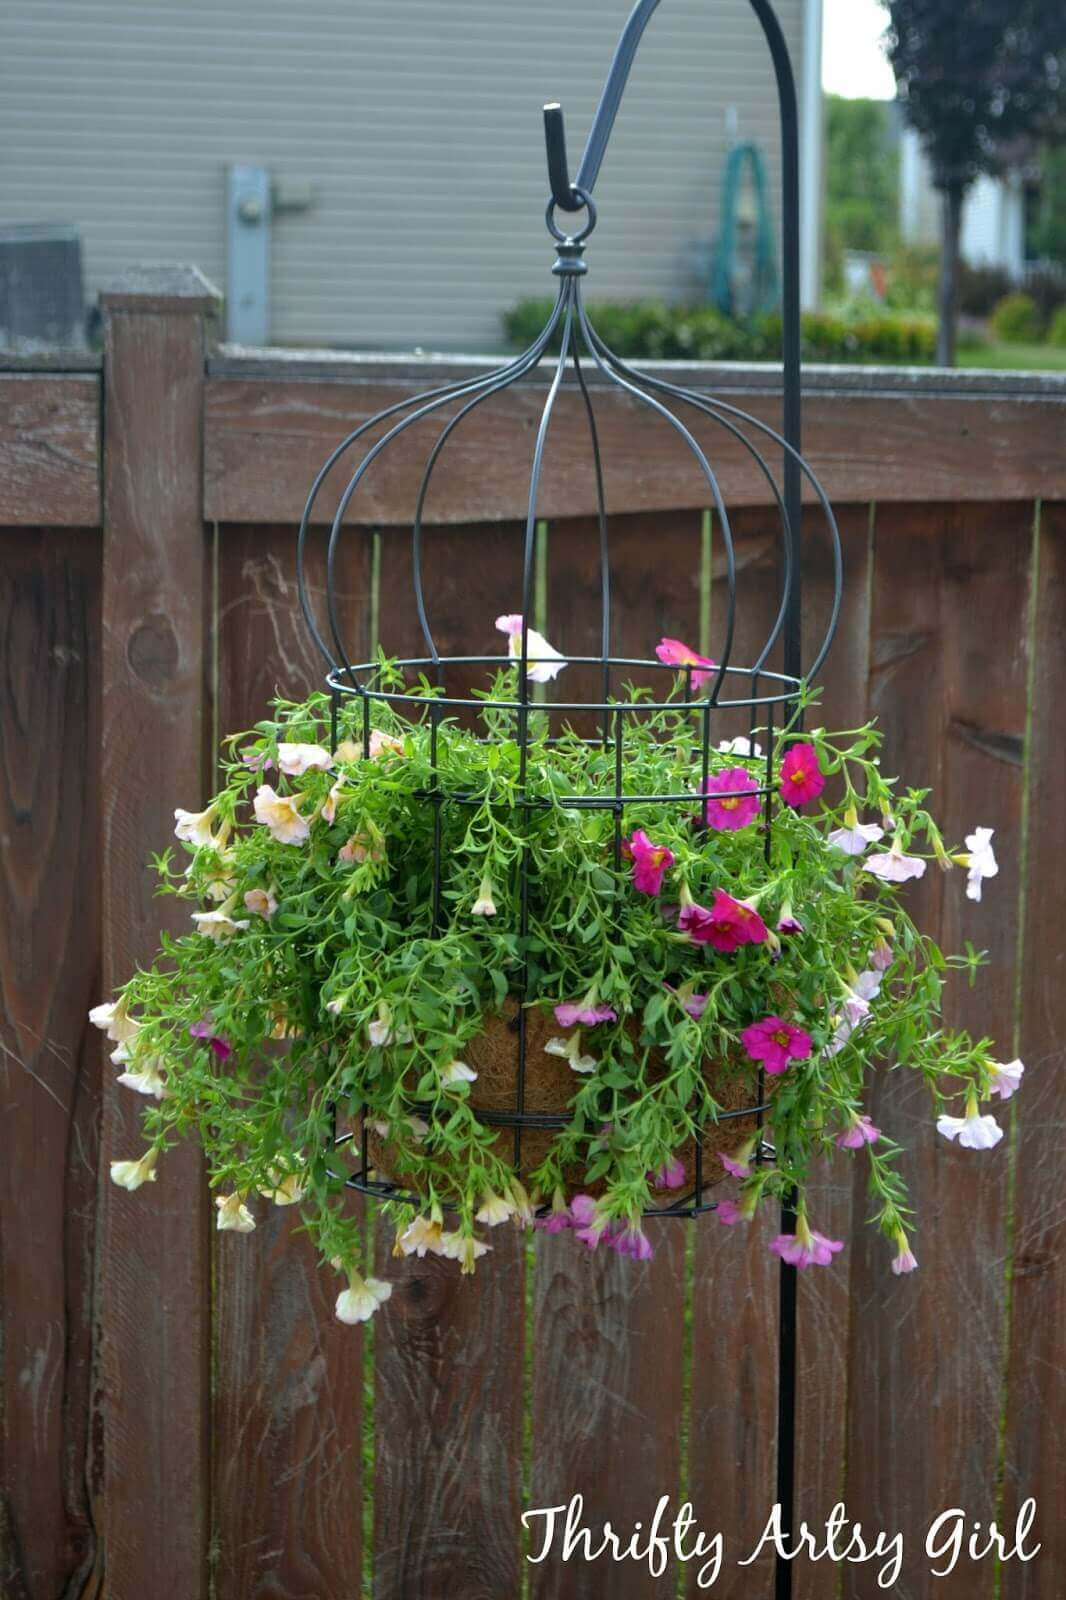 45 Best Outdoor Hanging Planter Ideas and Designs for 2017 on Tree Planting Ideas For Backyard id=78507